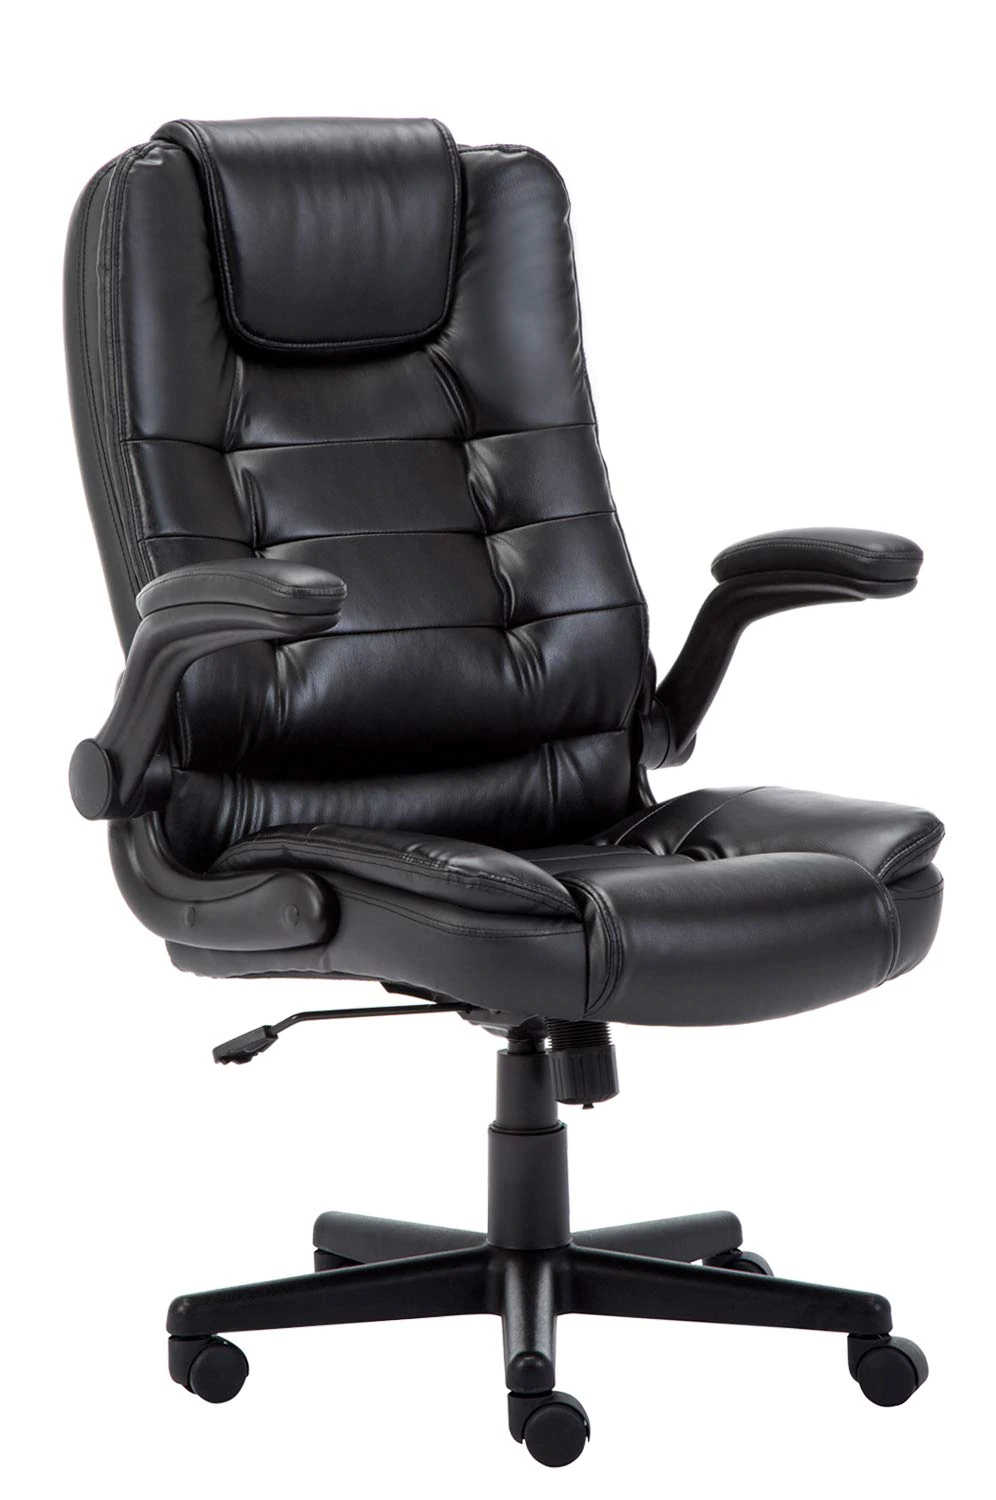 Domini Versatile Fashion Casual Computer Chair Massage Chair Furniture One Desktop Computer Computer Desk Computer Chair Computer Workstation